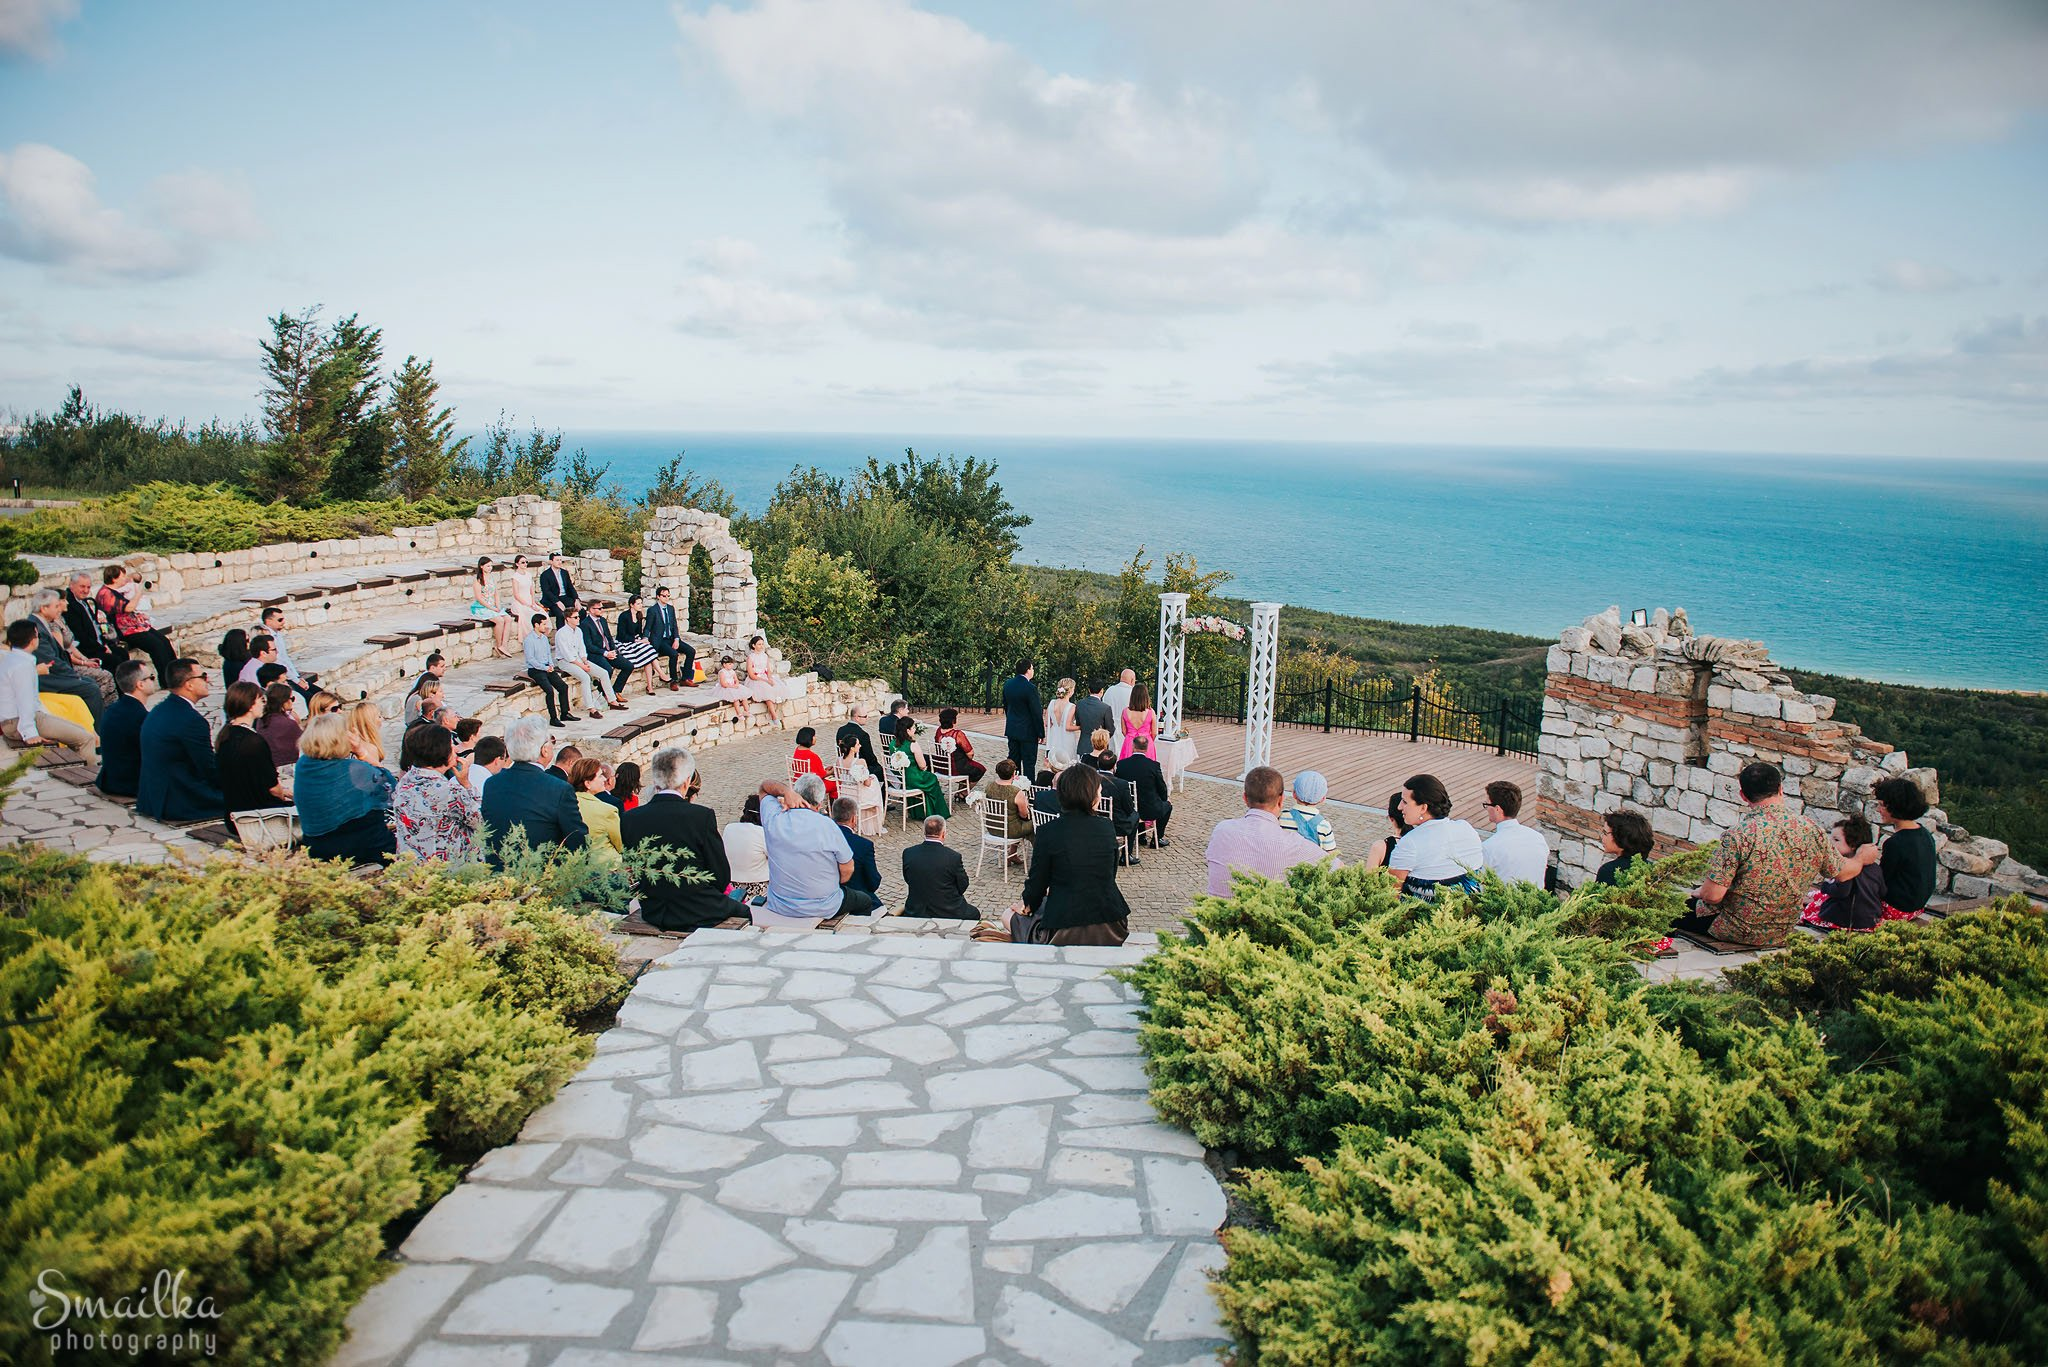 Wedding venue and the sea view at Black Sea Rama